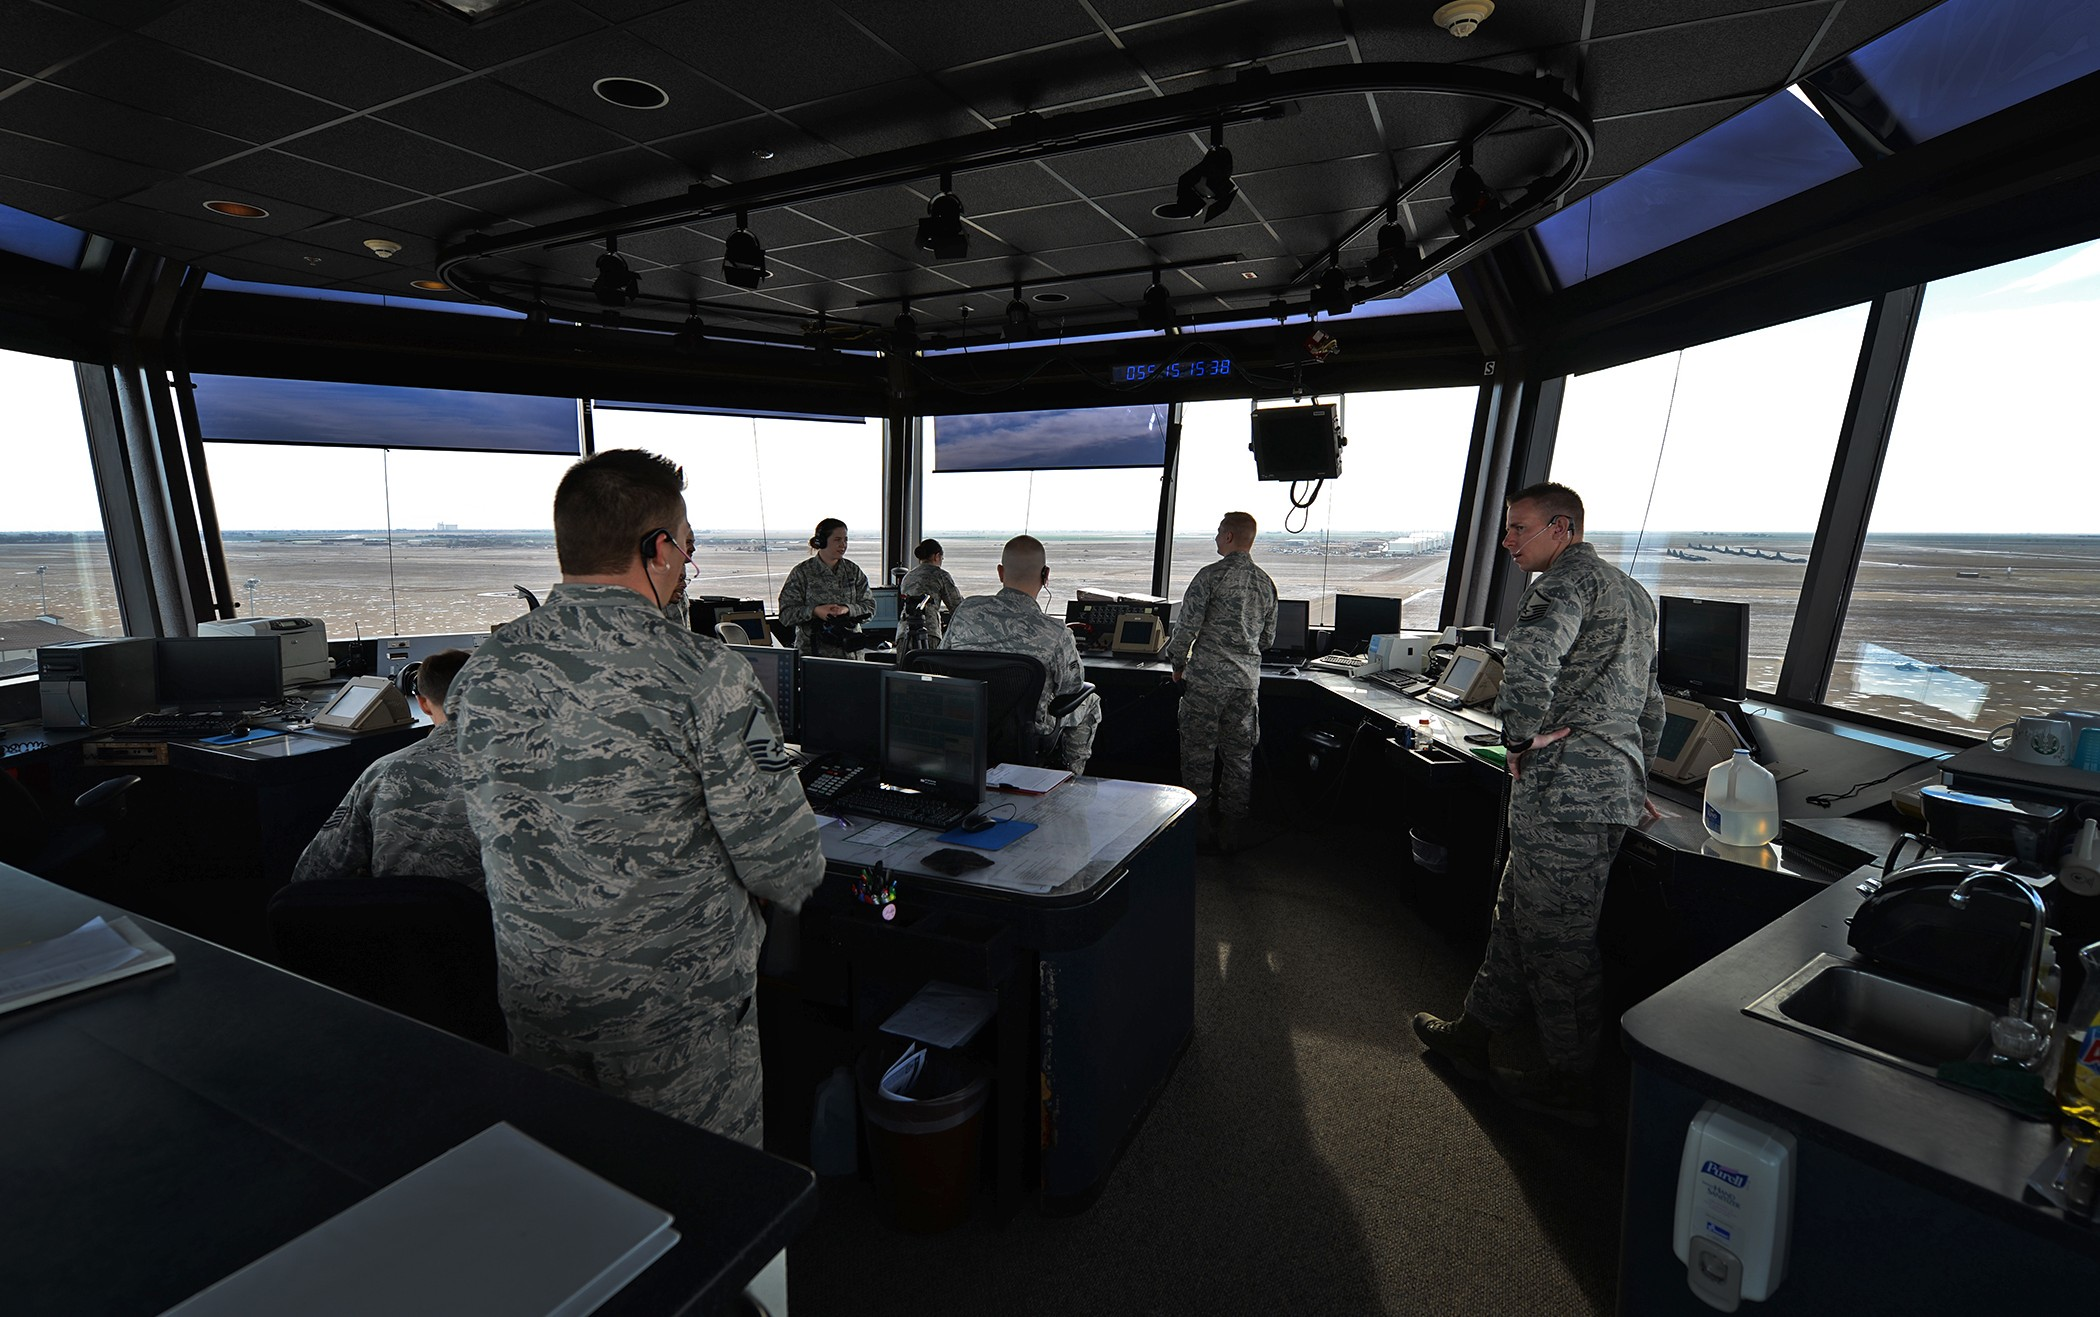 Members of the 27th Special Operations Support Squadron air traffic control man the tower and maintain constant communication with aircraft Feb. 24, 2015, at Cannon Air Force Base, N.M. The men and women of the 27th SOSS ensured that 2014 was the safest year in aviation and are striving to continue that momentum. (U.S. Air Force photo/Airman 1st Class Chip Slack)